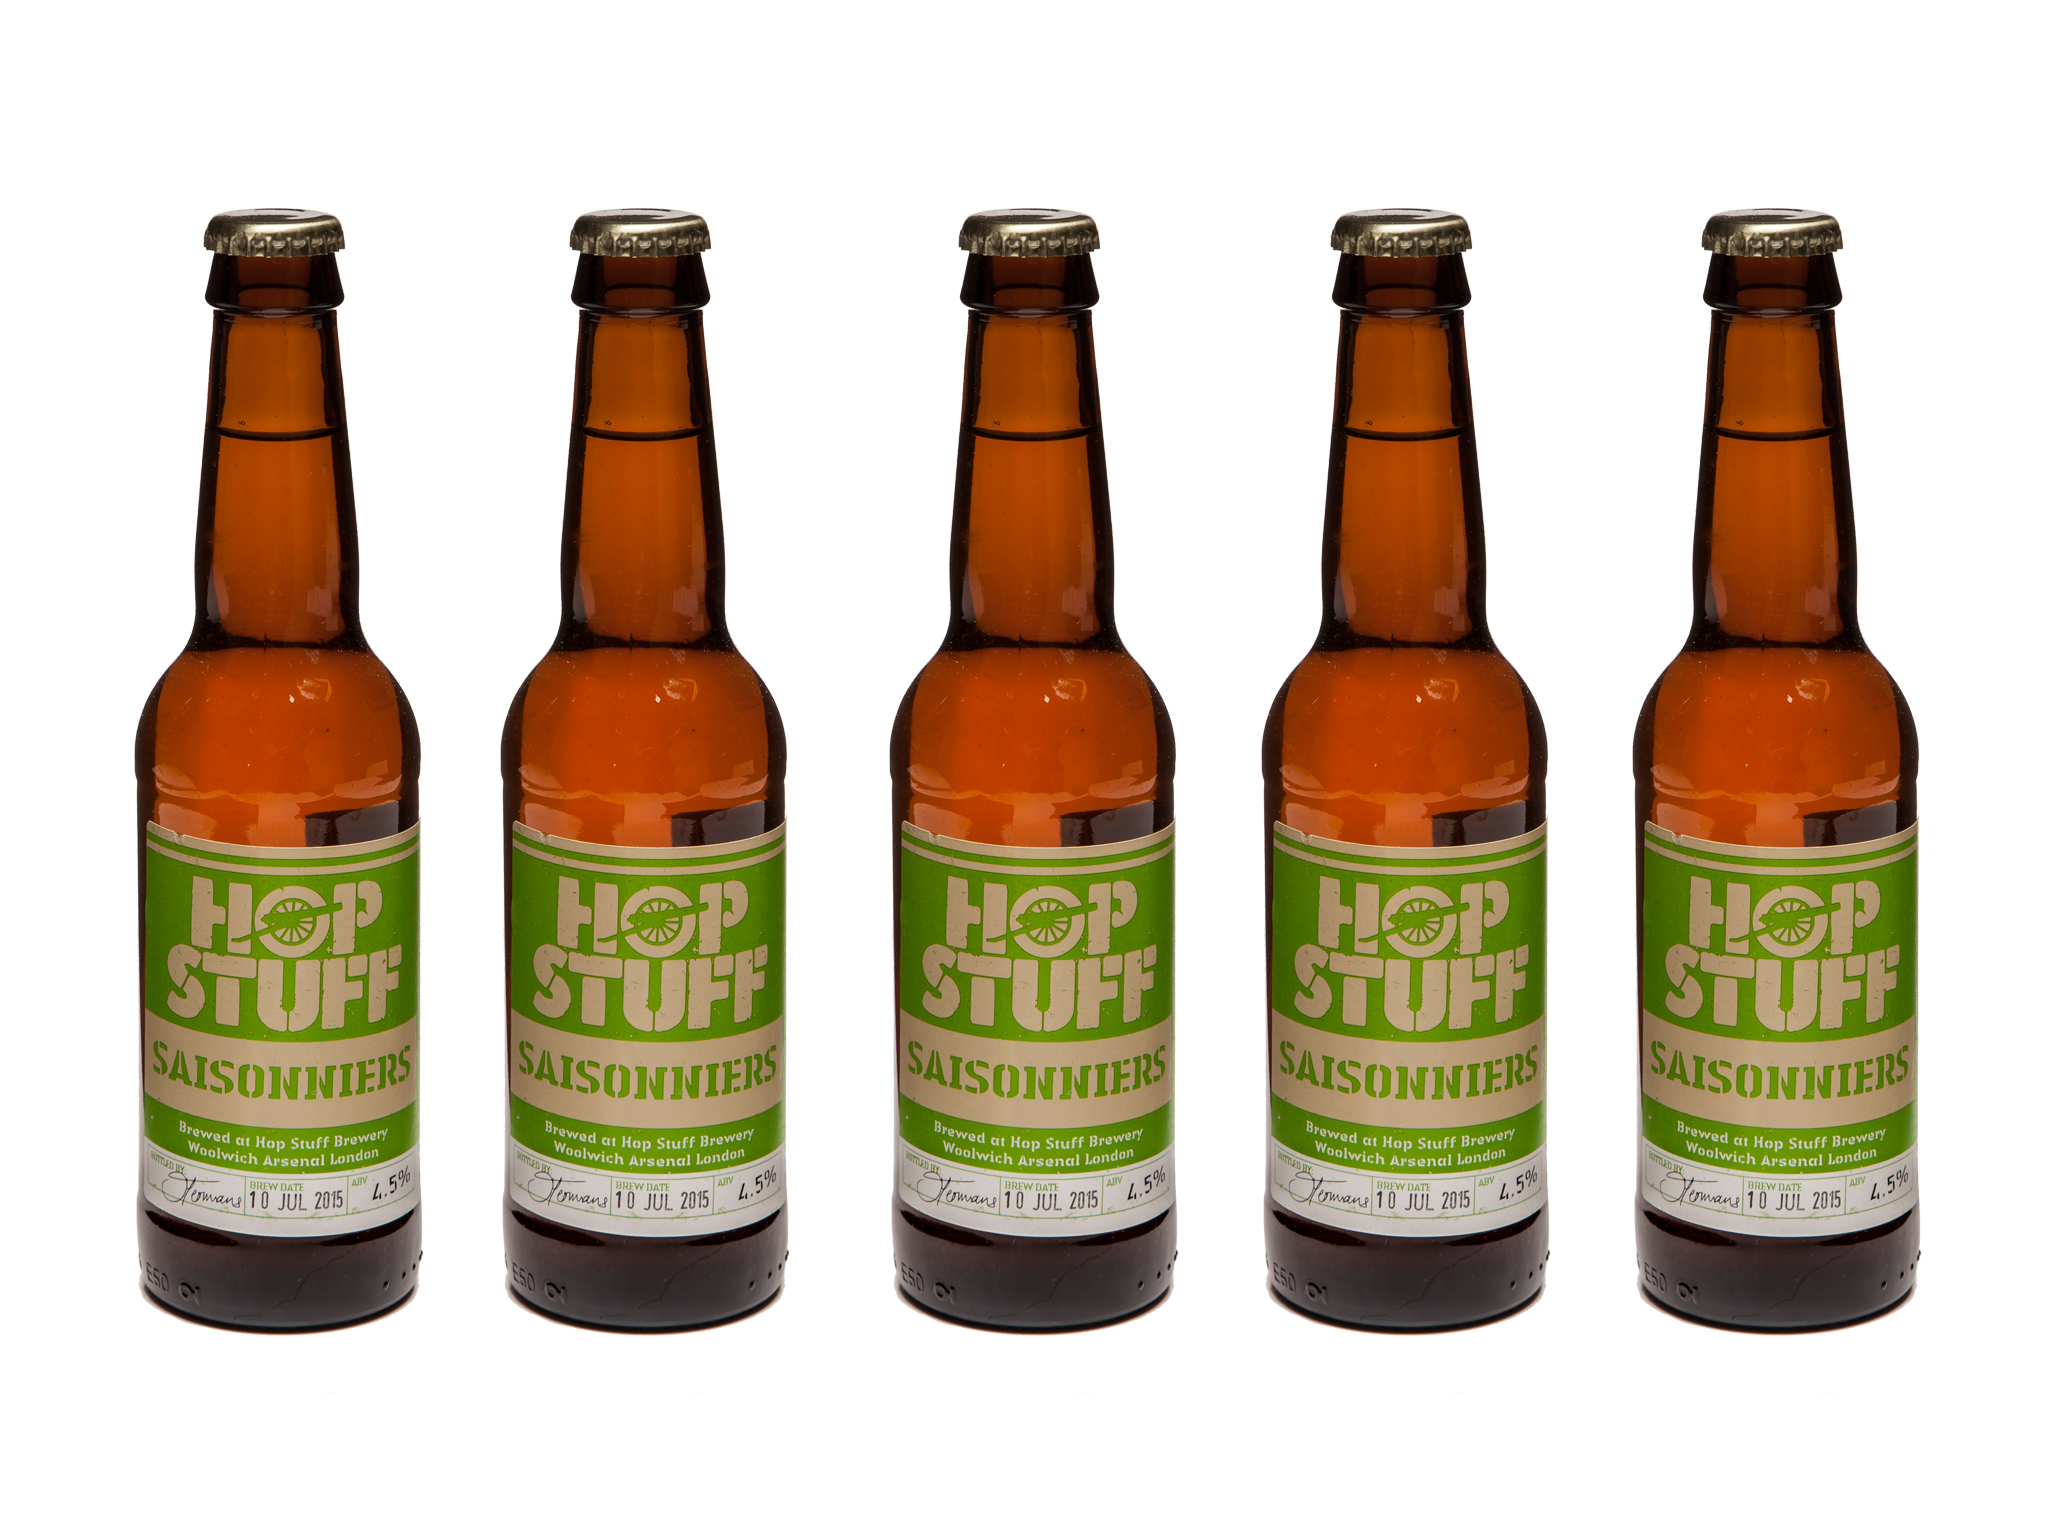 London's best craft beers, Hop Stuff